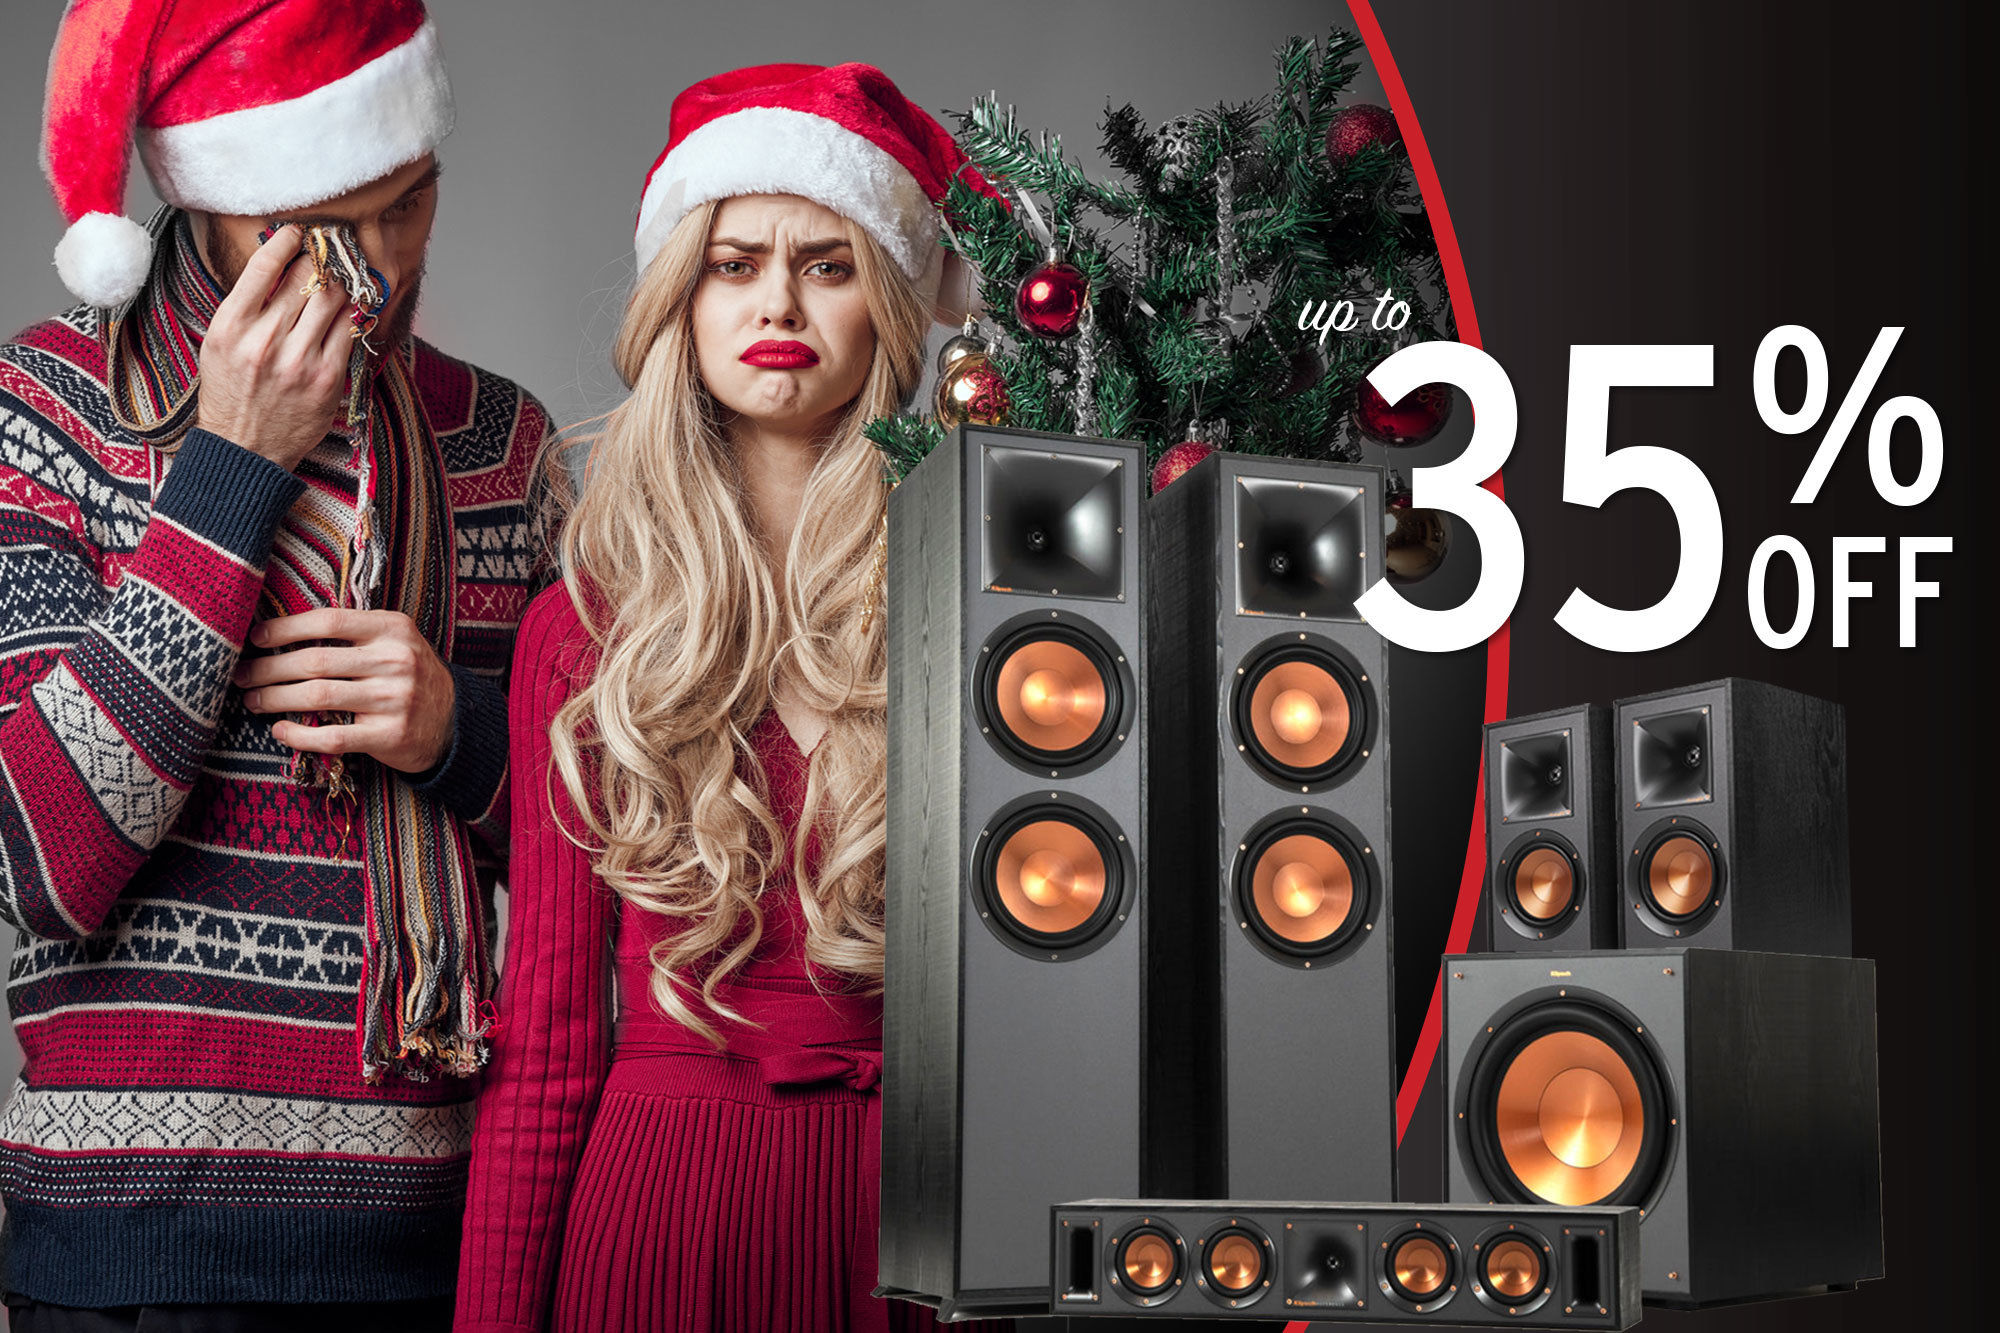 Holiday Sale Woman and man sad they did not get Klipsch as gifts for the holidays up to 35% off